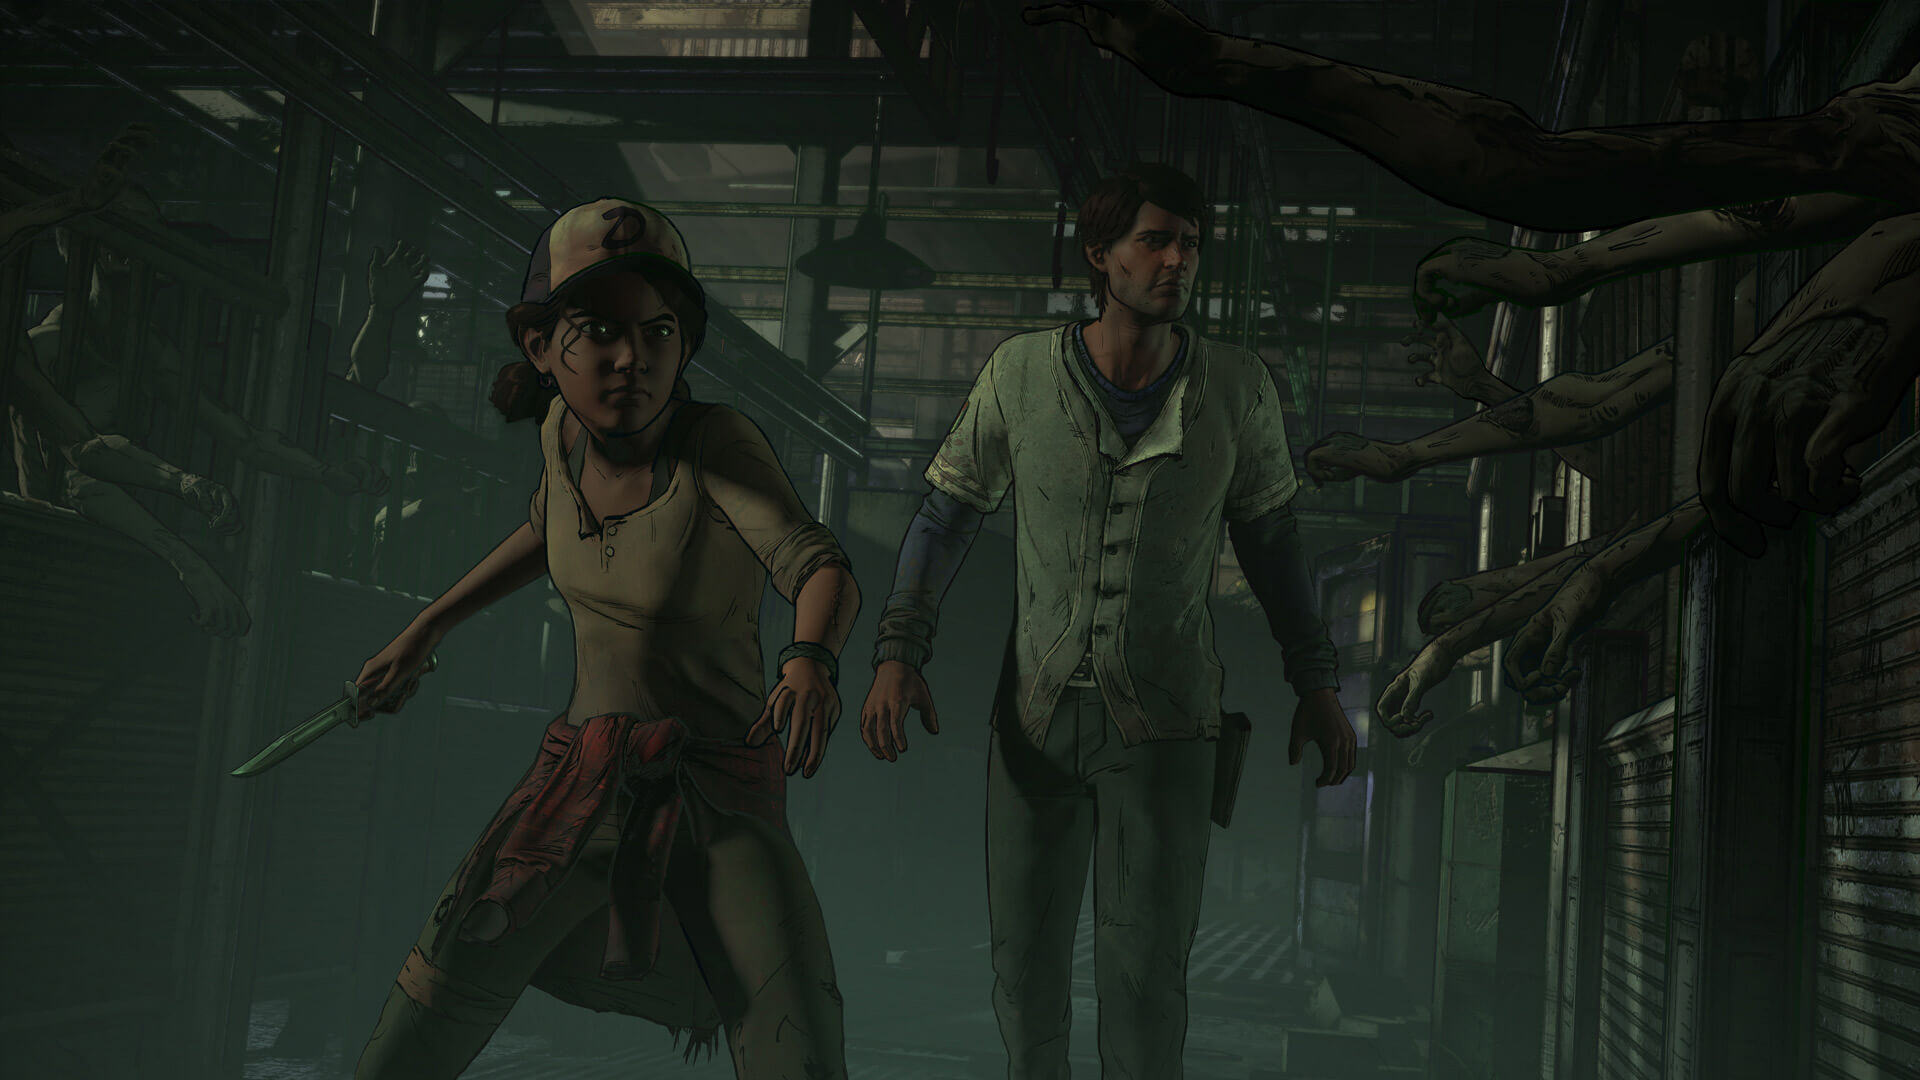 The Walking Dead: A New Frontier - Episodes 1 & 2 - Ties That Bind Masthead